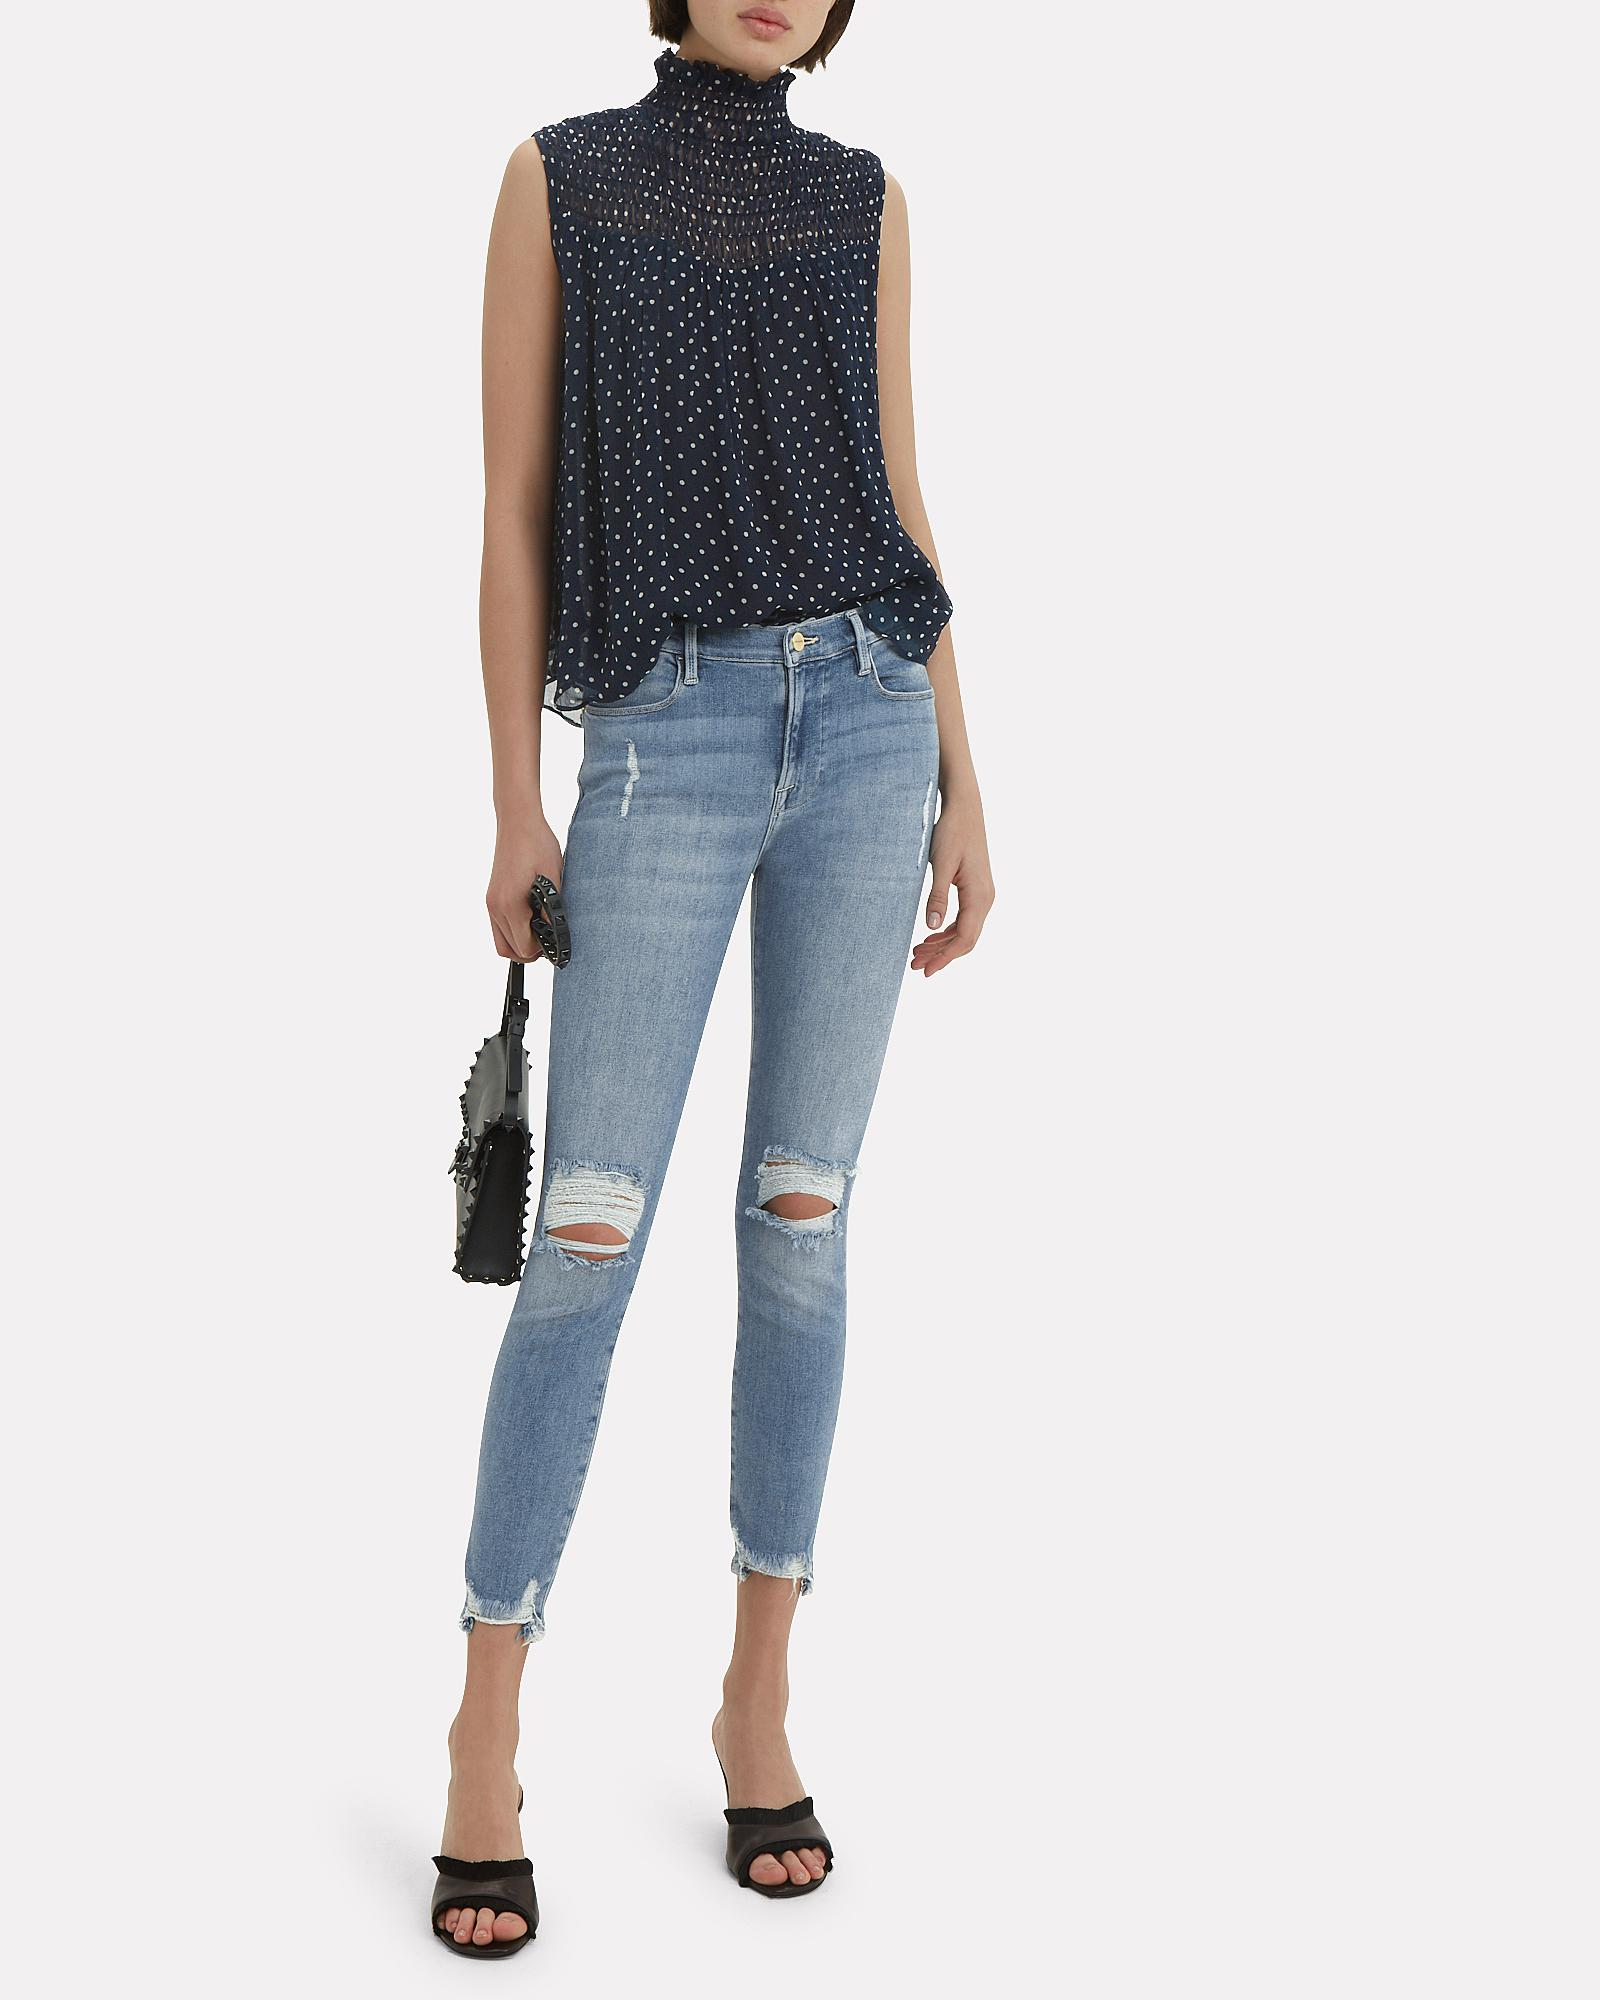 6bc780fa3f6d4f Lyst - FRAME Polka Dot Smocked Navy Top in Blue